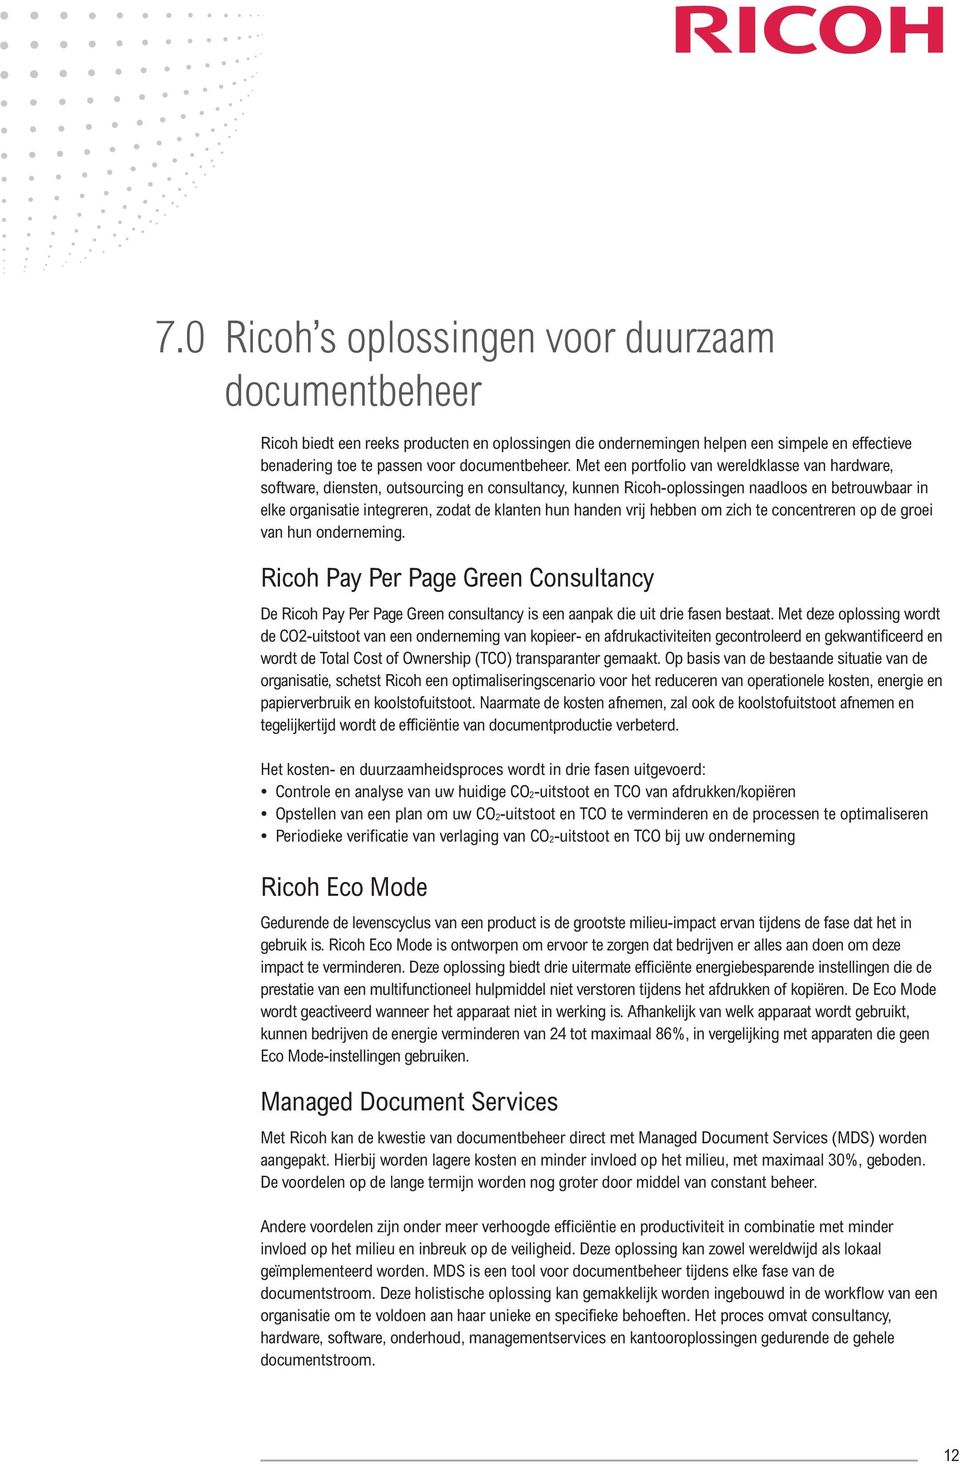 handen vrij hebben om zich te concentreren op de groei van hun onderneming. Ricoh Pay Per Page Green Consultancy De Ricoh Pay Per Page Green consultancy is een aanpak die uit drie fasen bestaat.